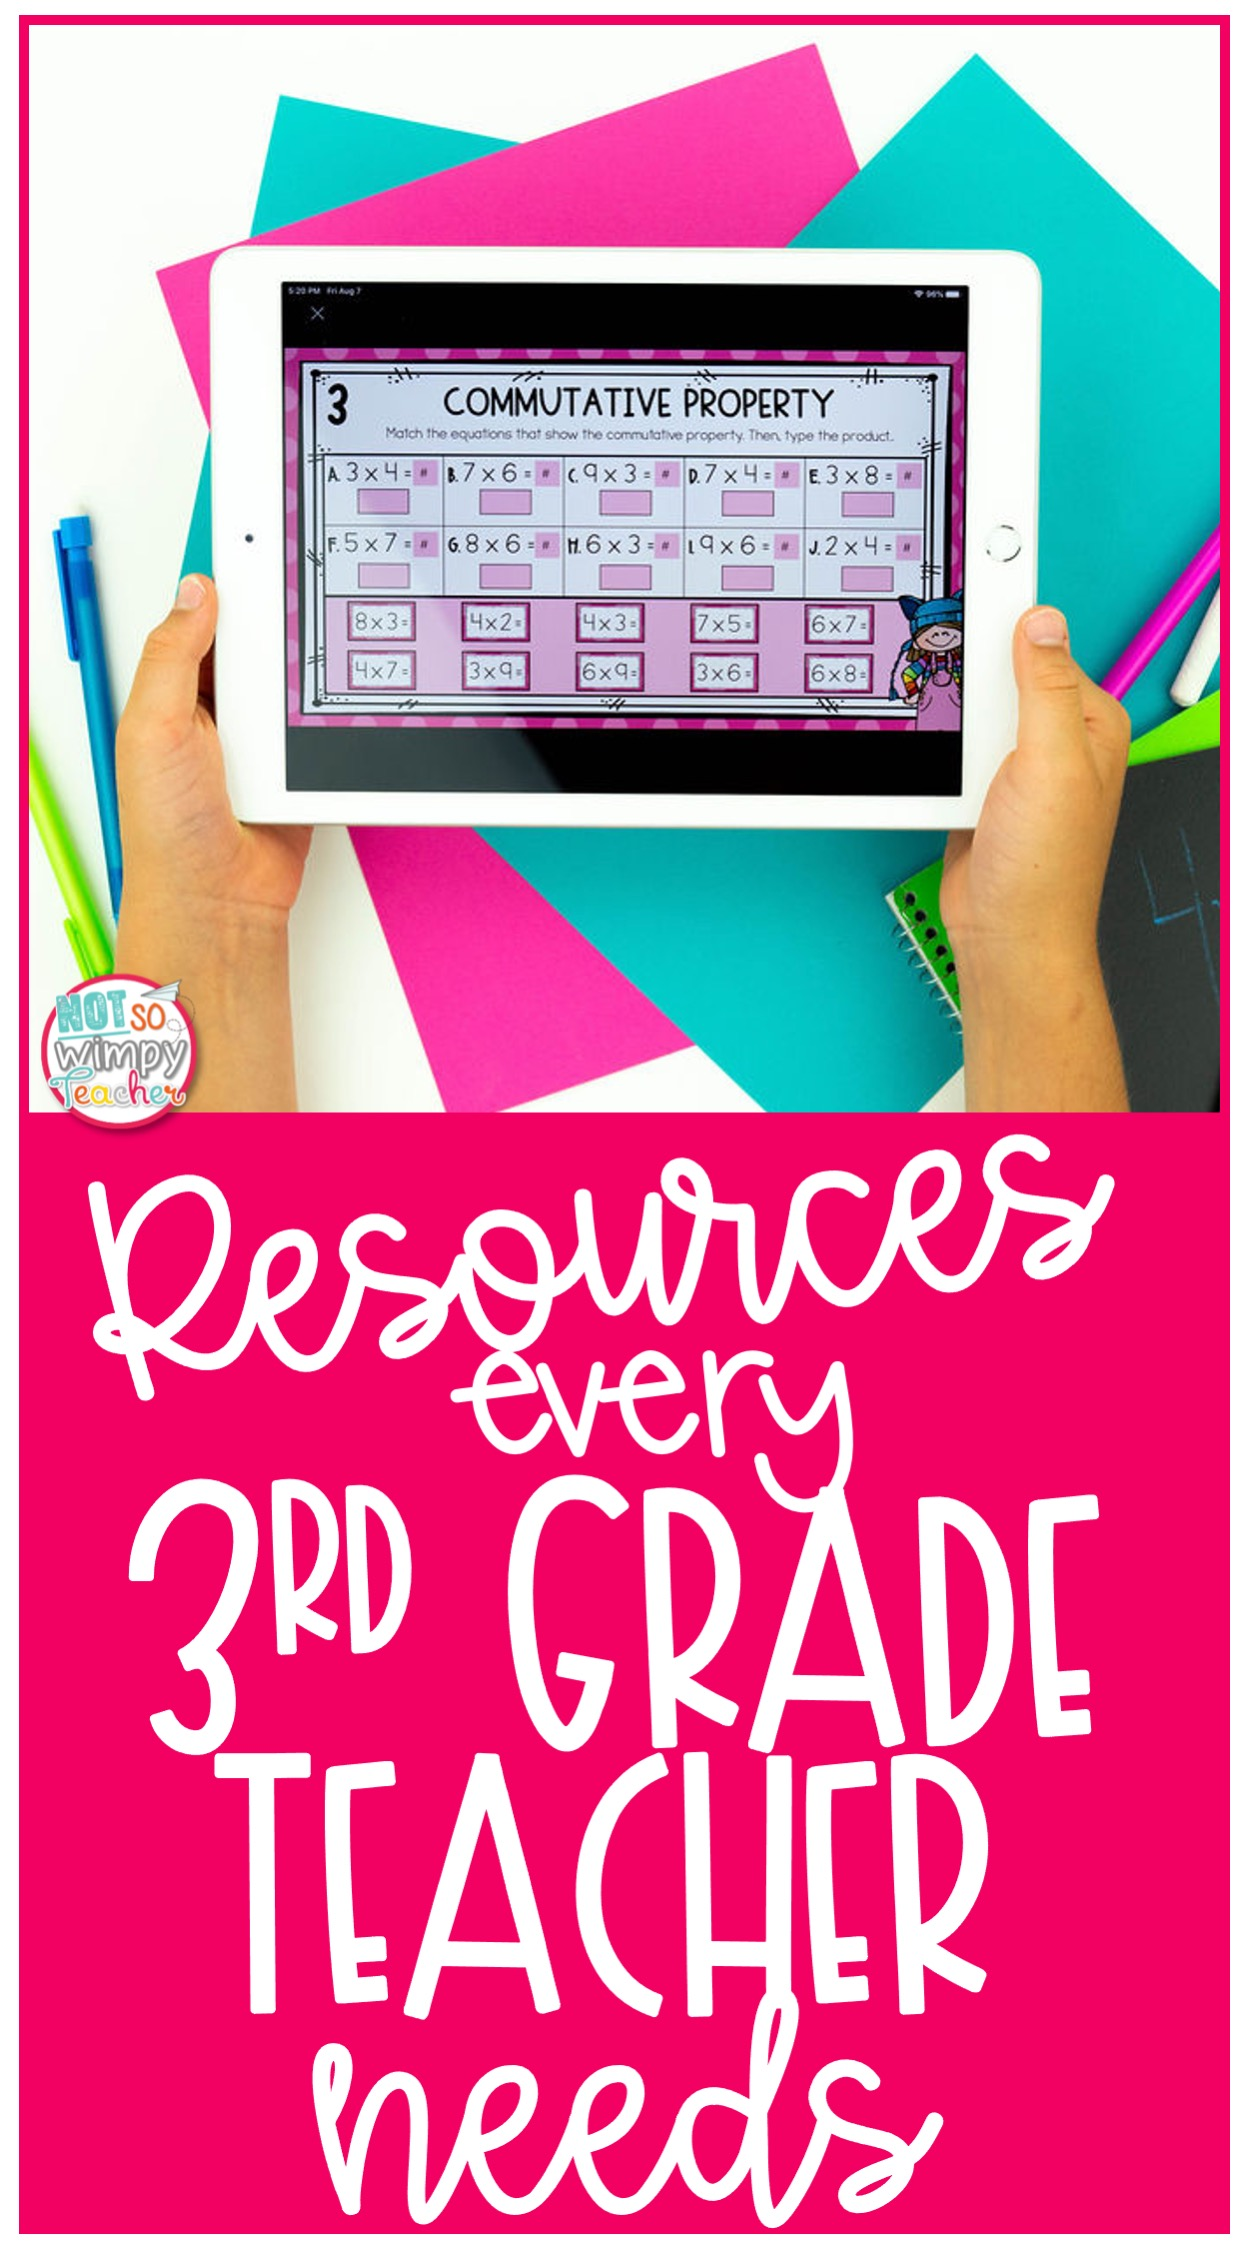 student holding ipad with digital multiplication activity with text overlay resources every 3rd grade teacher needs